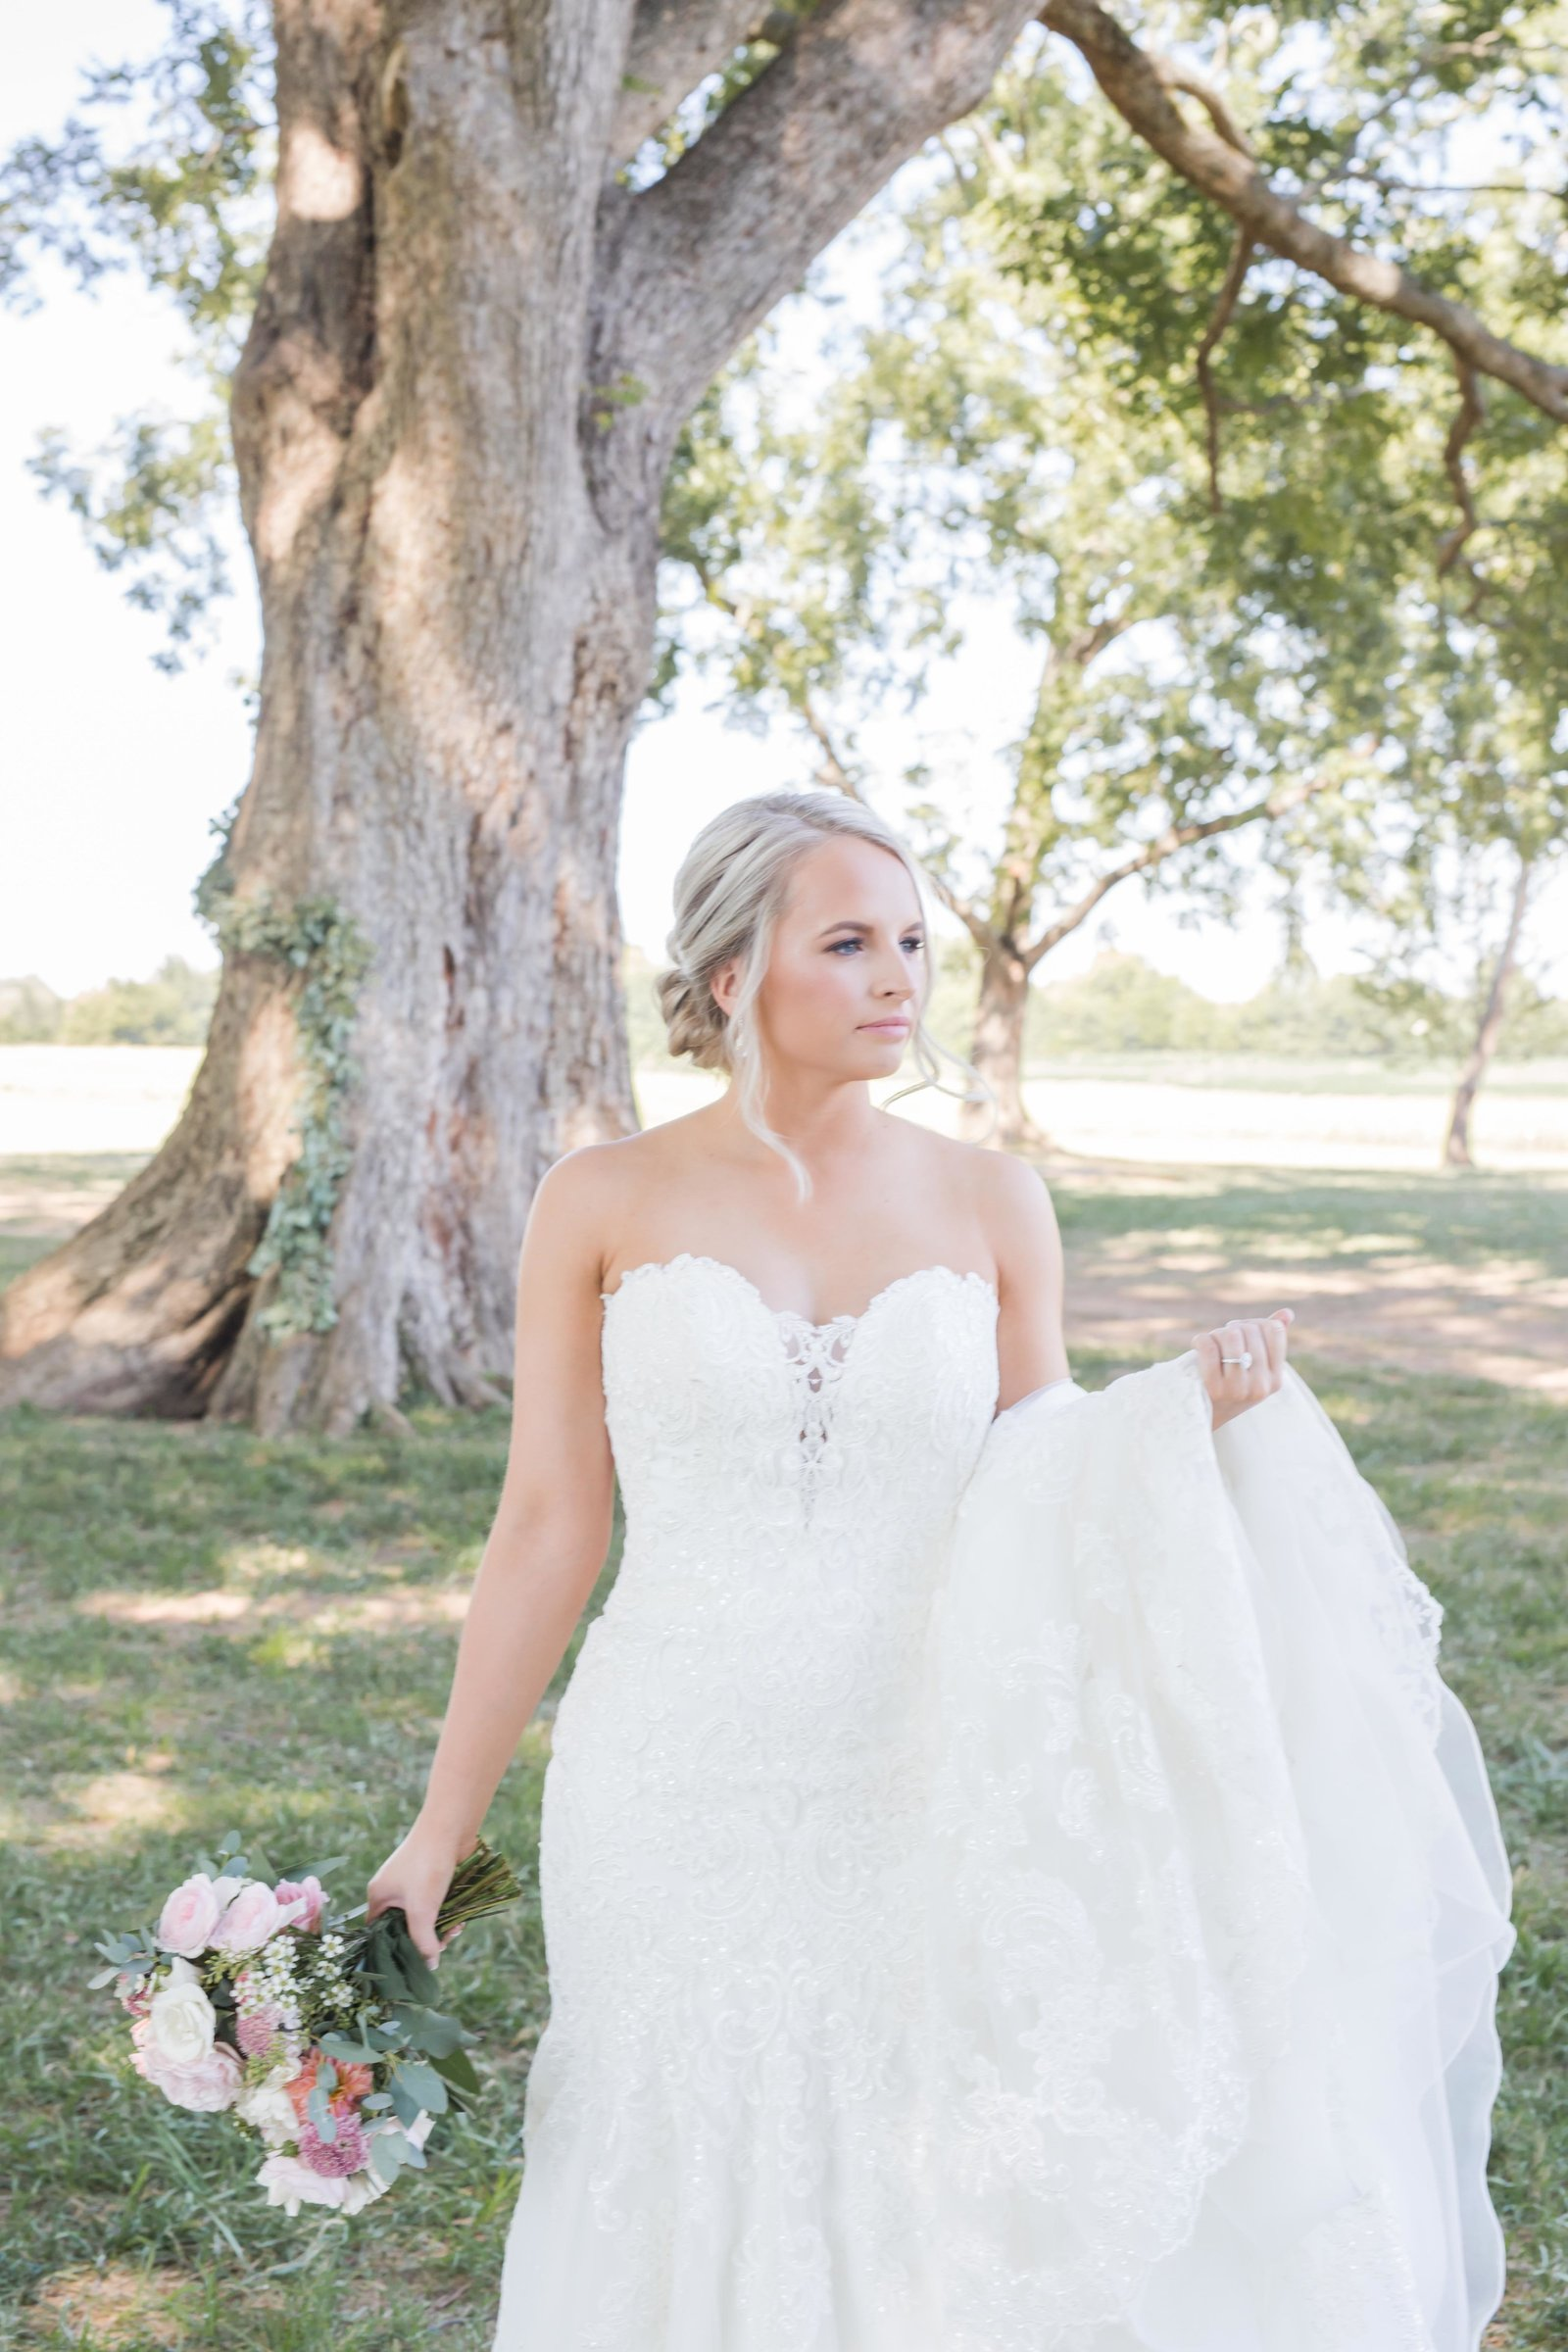 blonde bride holding wedding gown and bridal bouquet